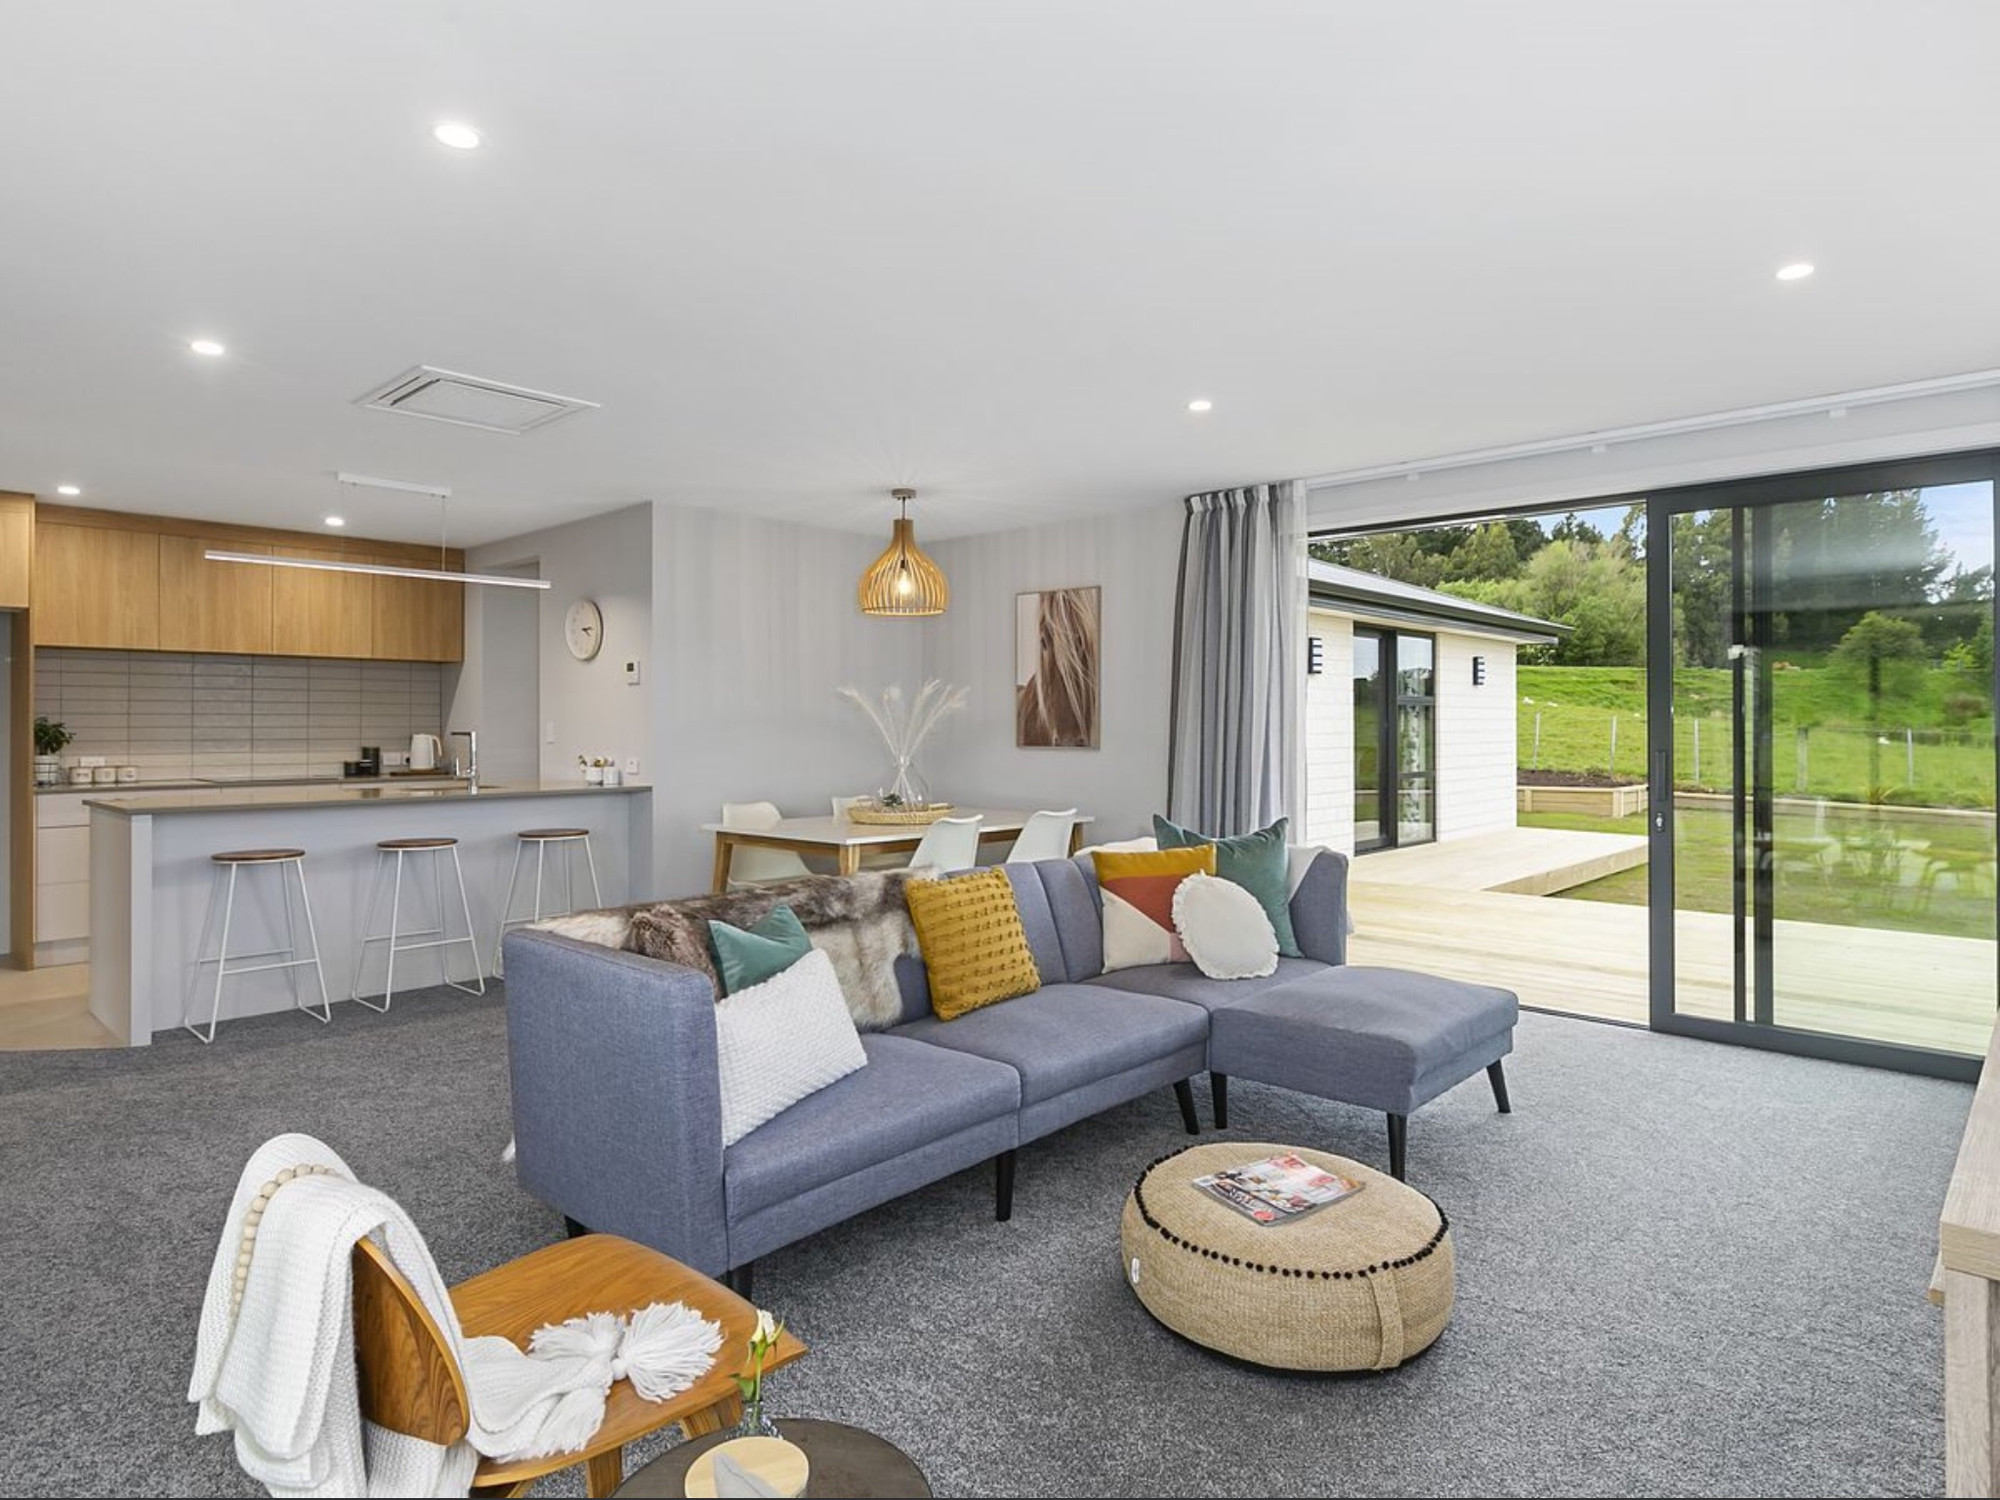 New build by Eoin Kirk from Outlet Homes